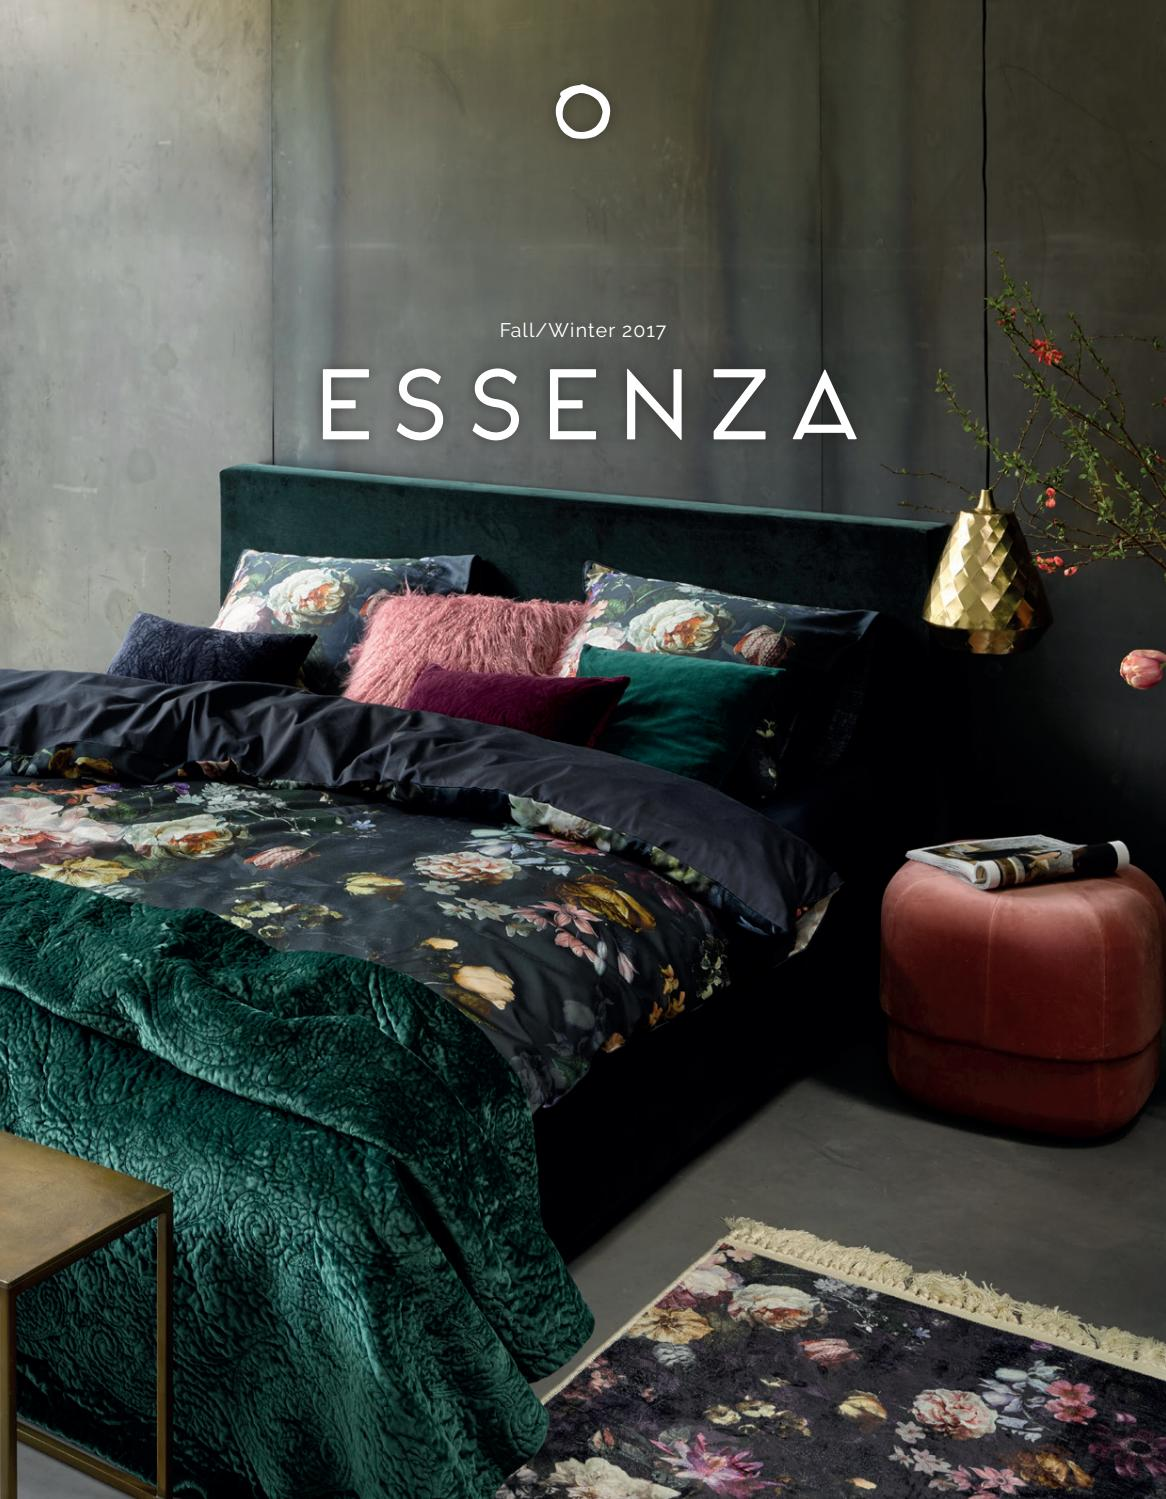 Slaapkamer Fabric Essenza Fall Winter 2017 Bed Bath Collection By Essenza Home Issuu